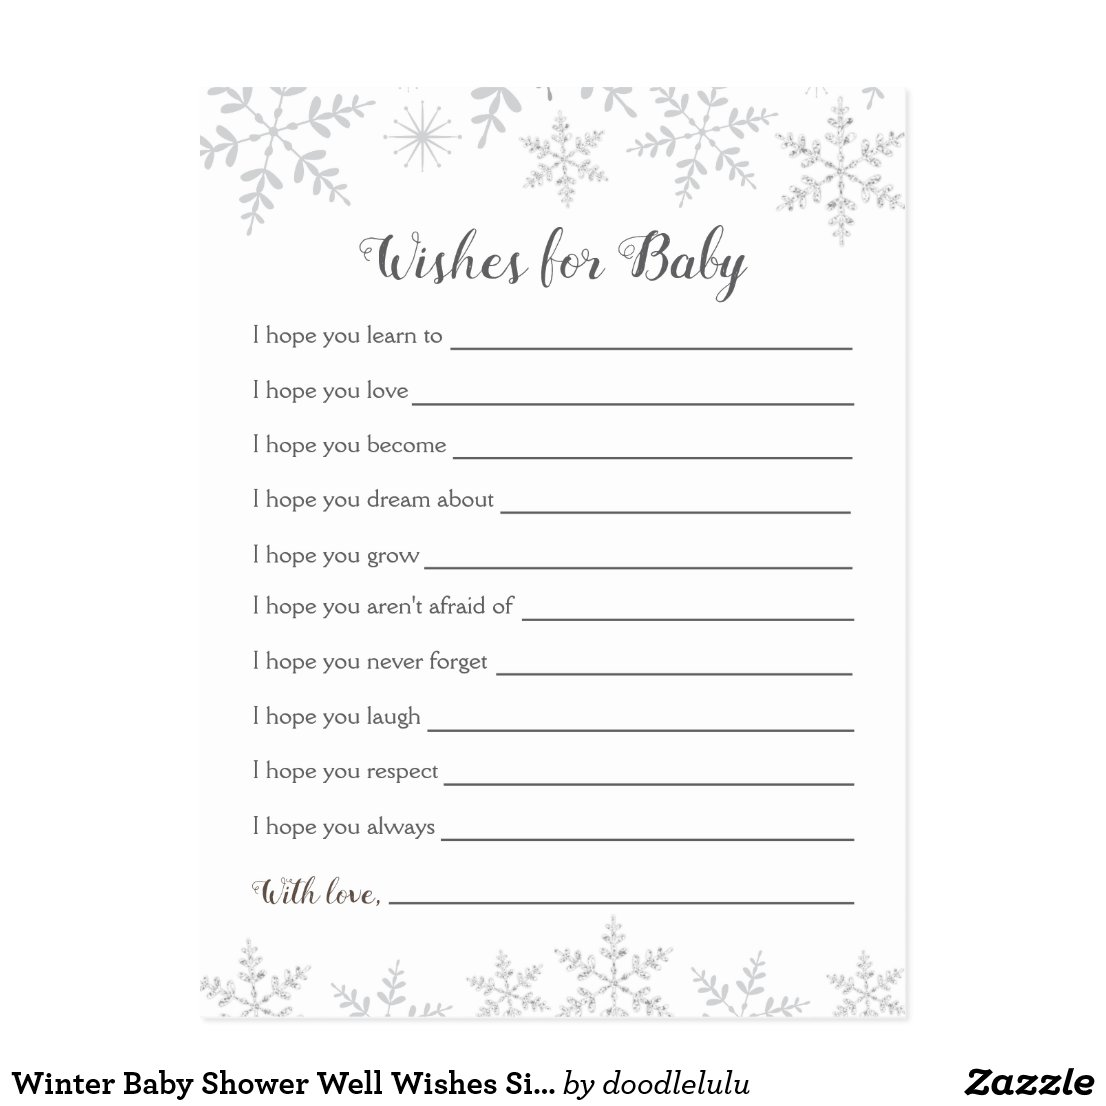 Winter Baby Shower Well Wishes Silver Snowflakes Postcard